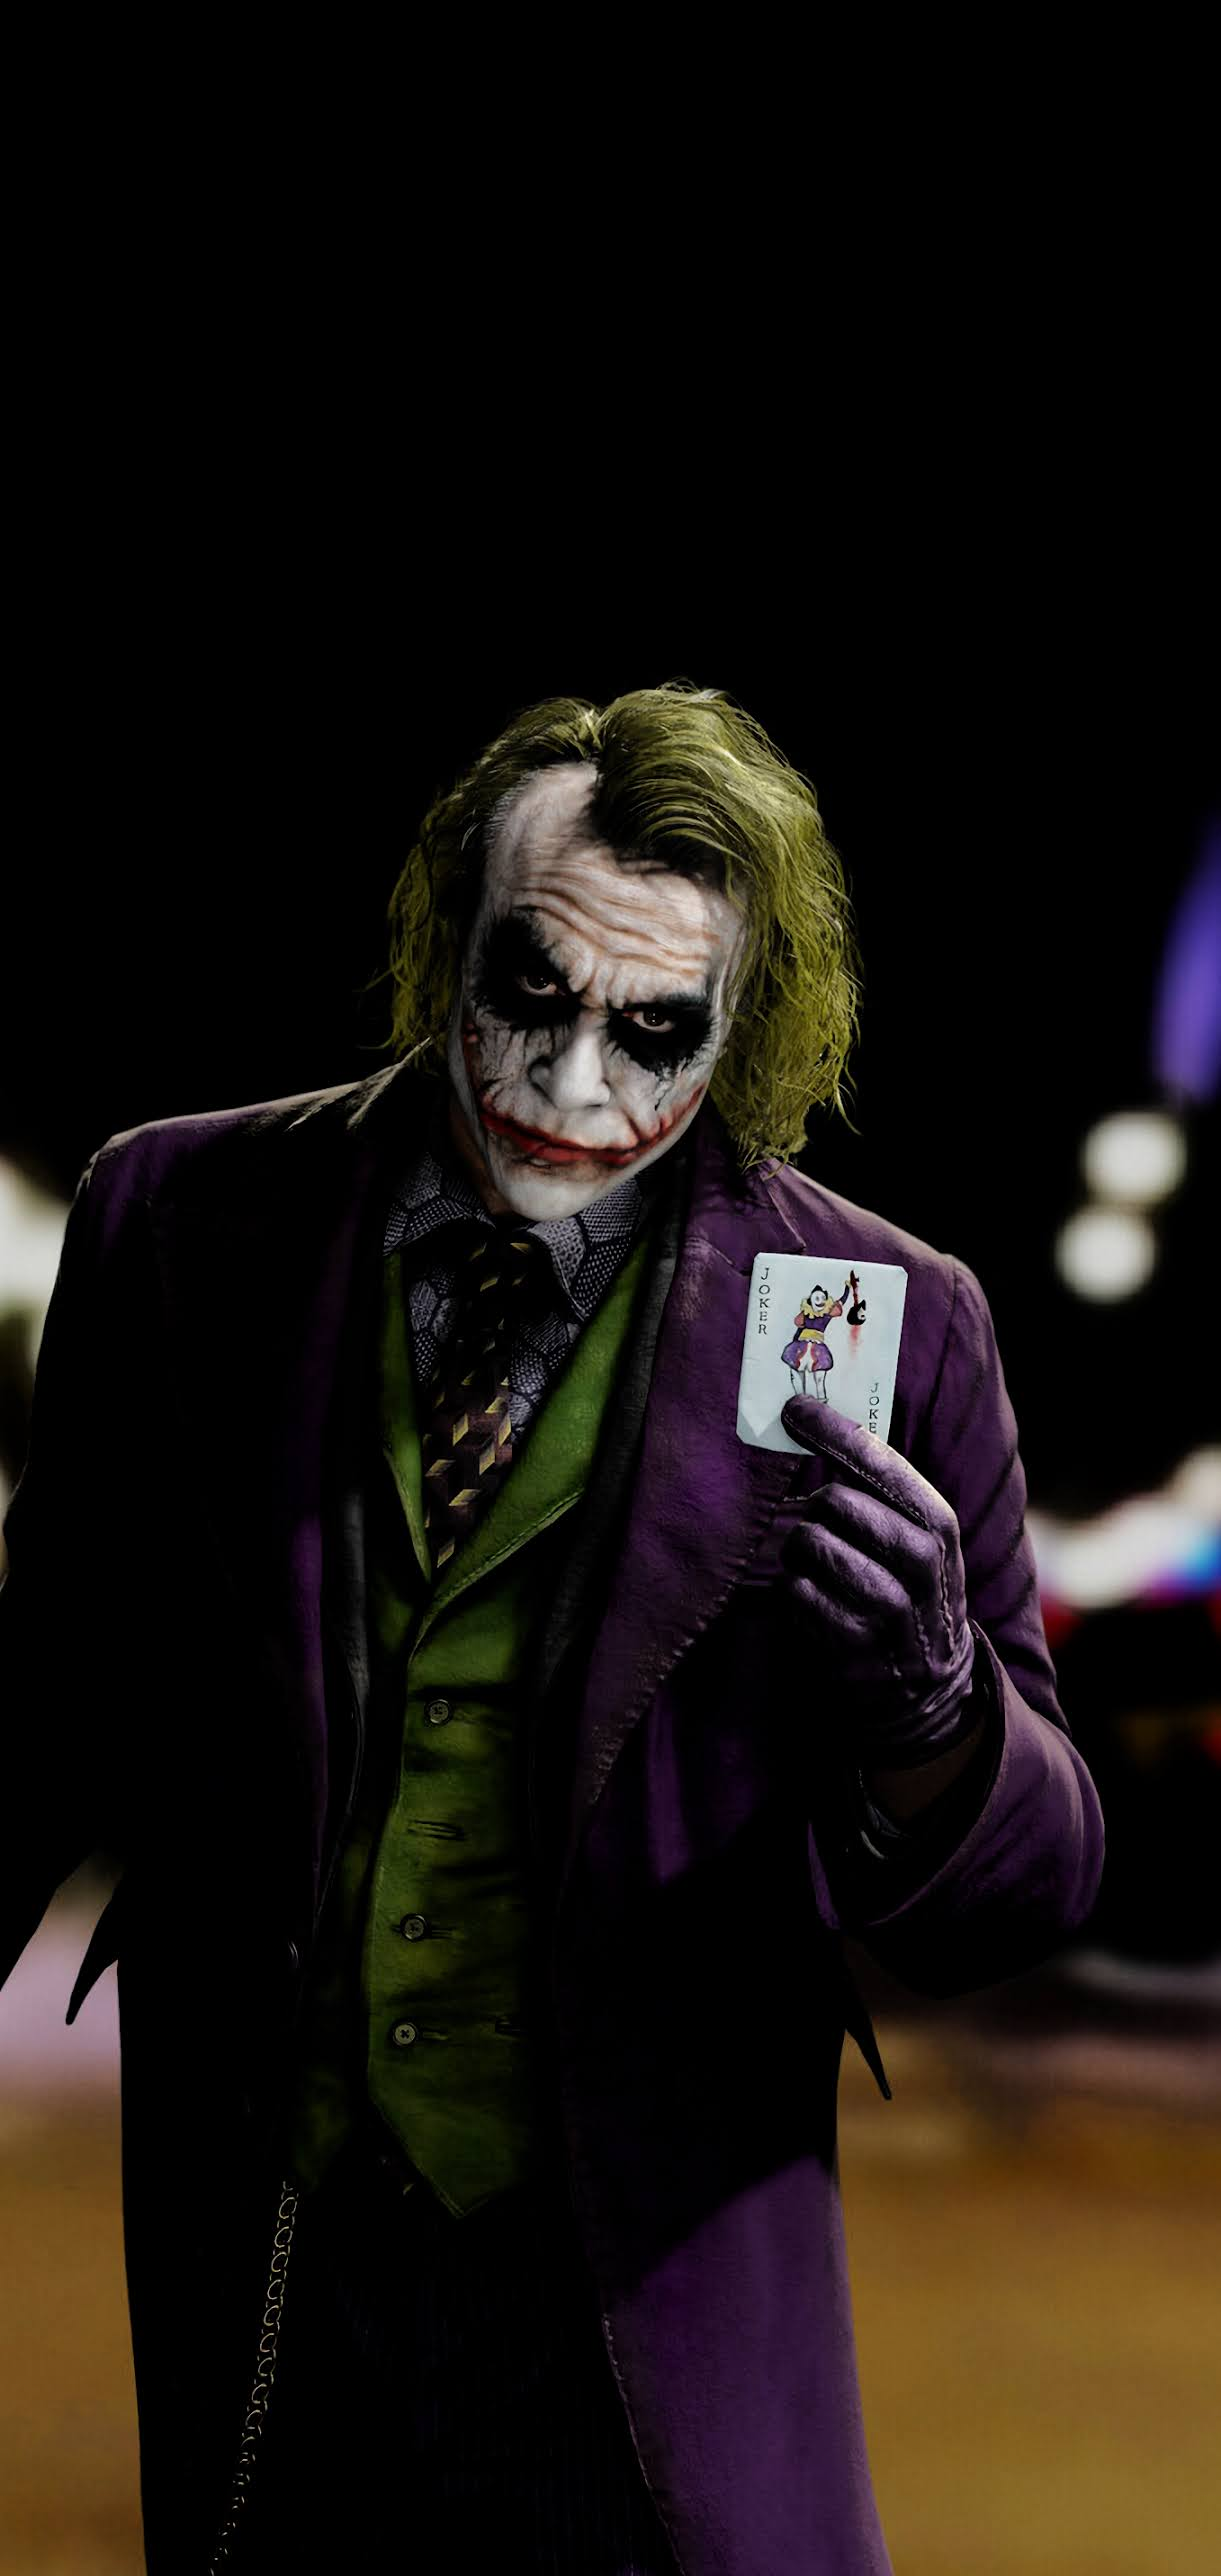 JOKER oled amoled wallpaper for iphone